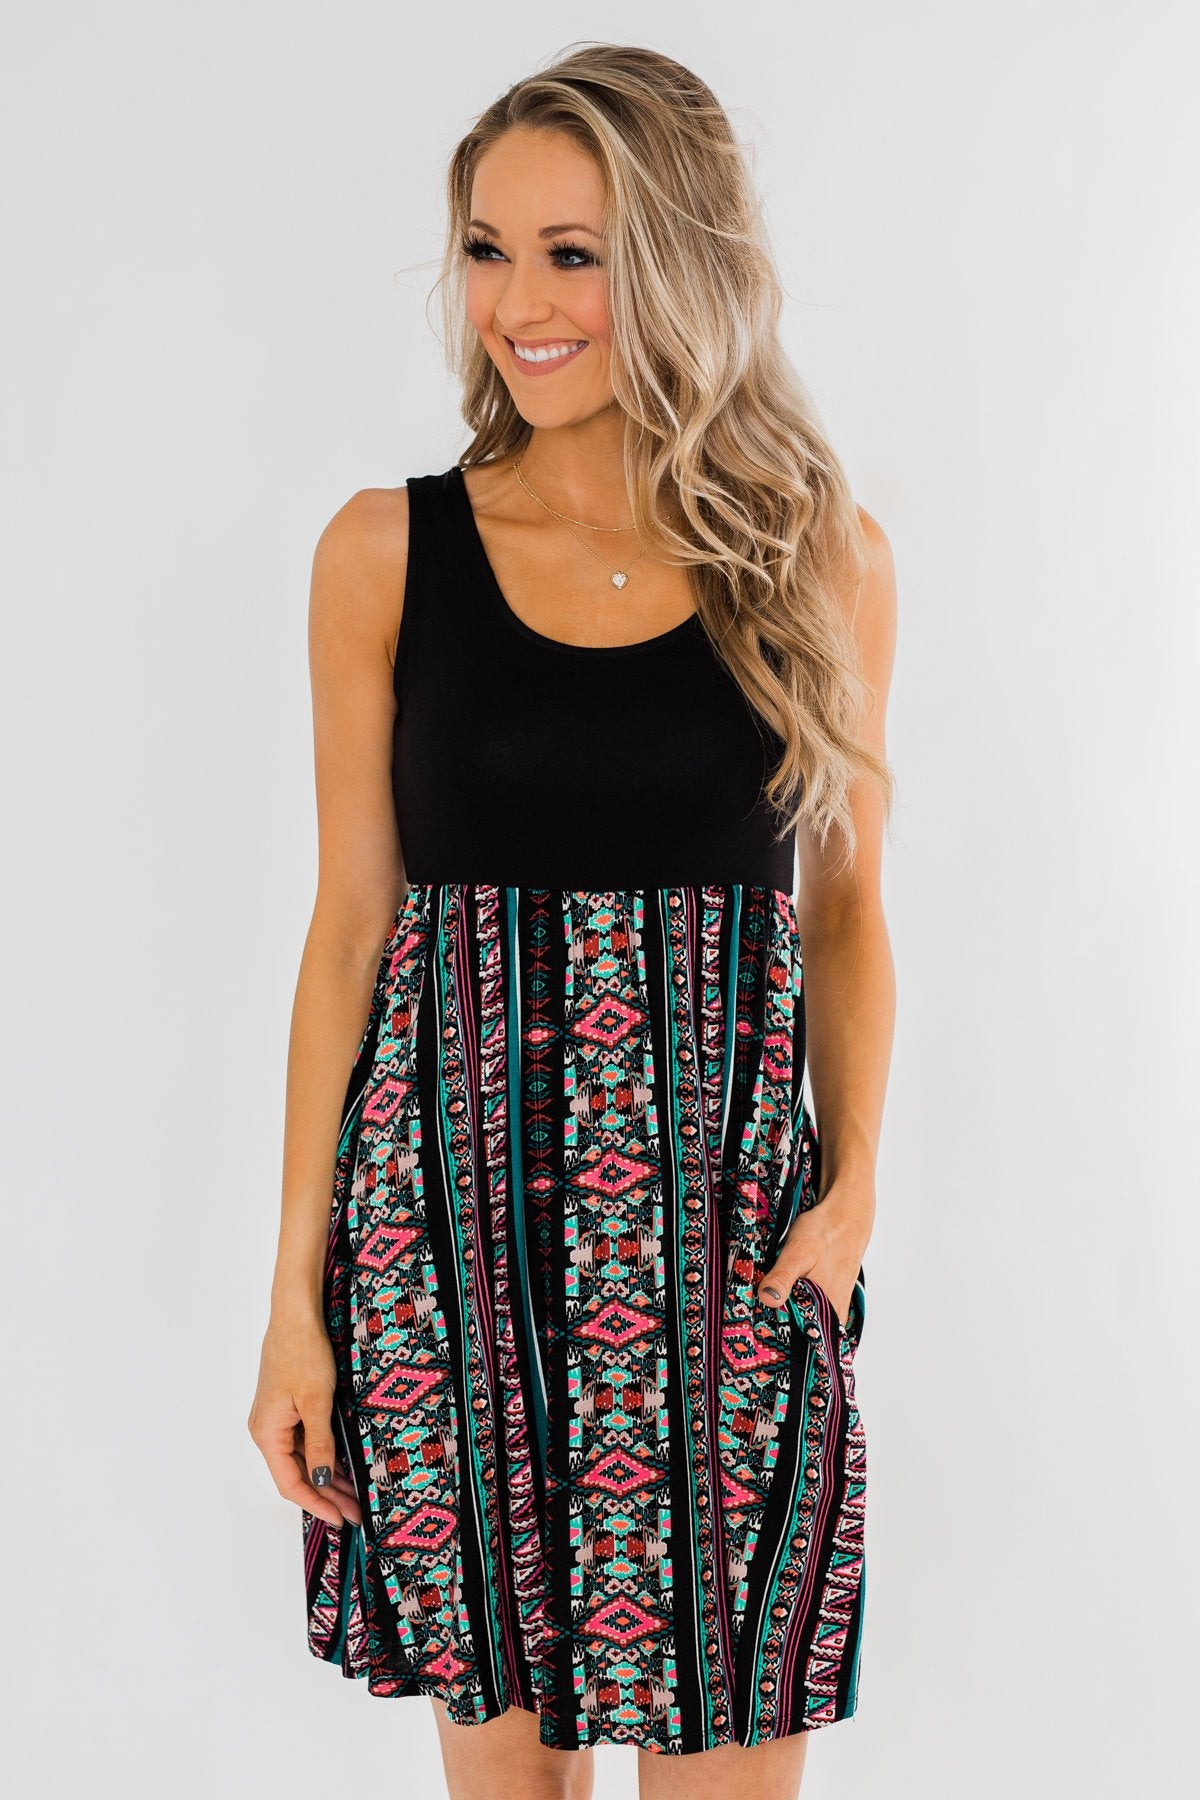 More Of You Aztec Dress- Black